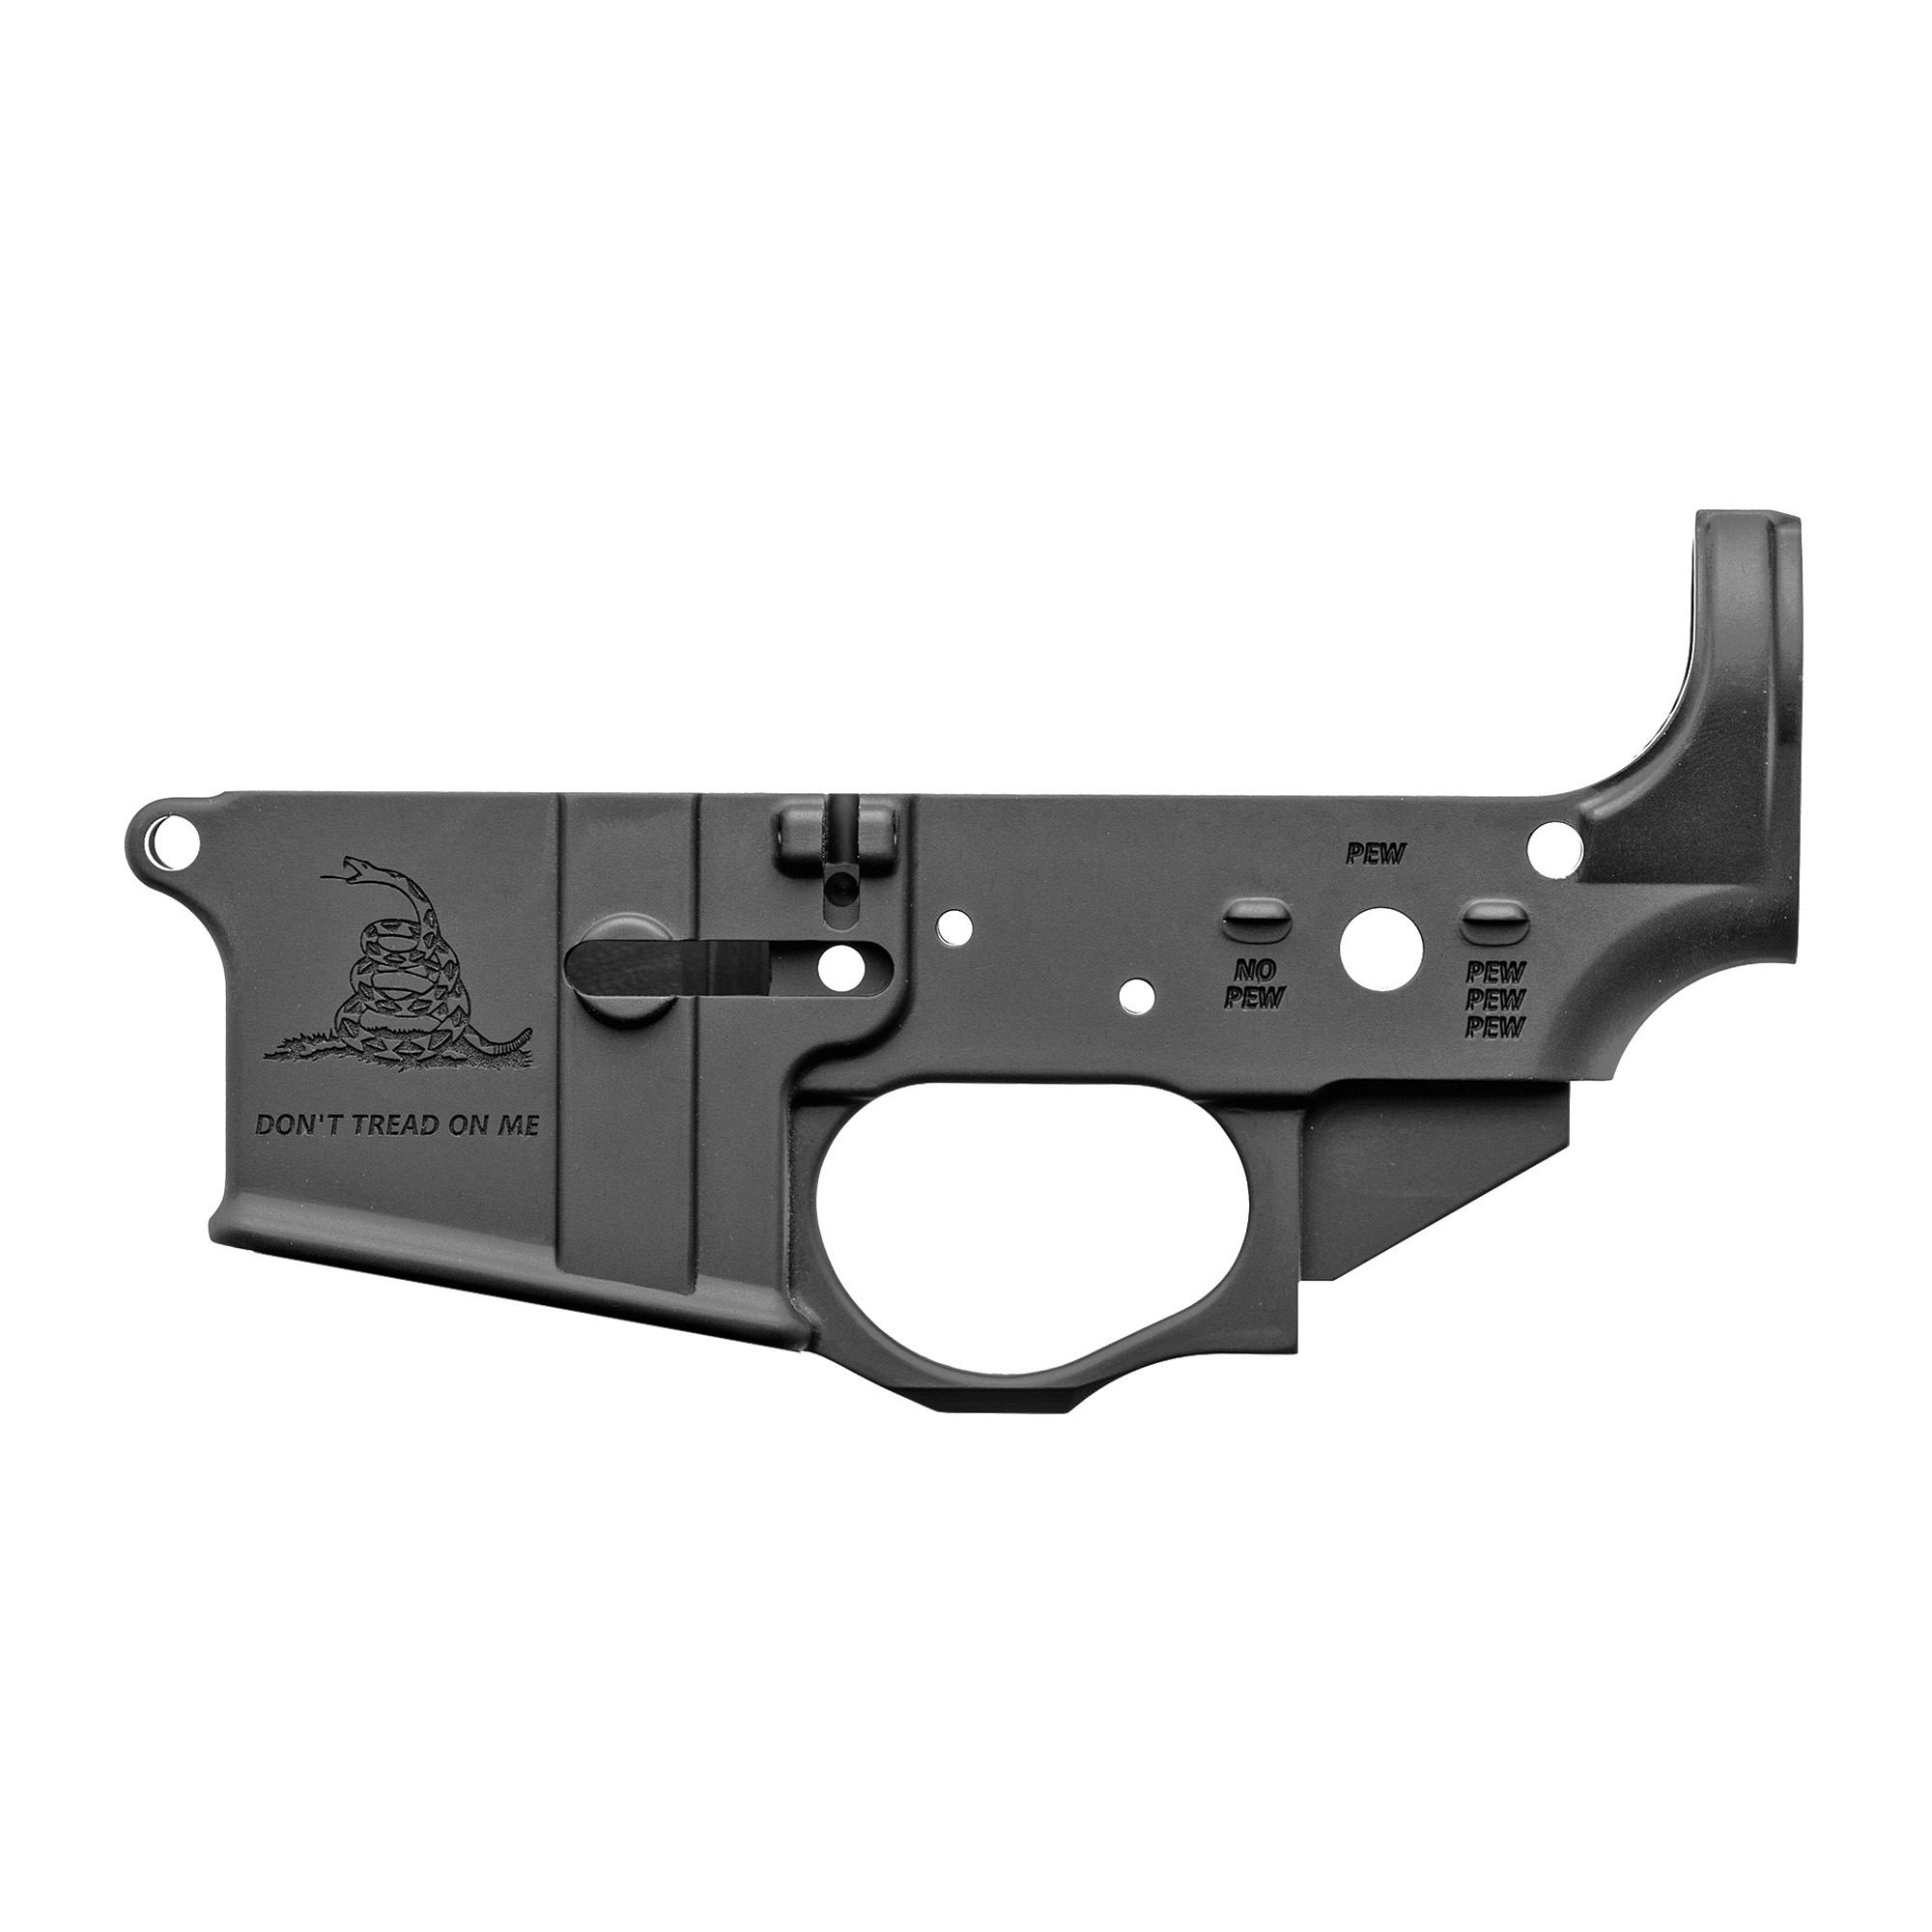 The Spikes Tactical Forged AR-15 lower receiver is perfect for your next AR-15 build. This particular lower receiver features the Gadsden logo which has not been color filled. The lower is made from 7075 T6 aluminum and is finished with a Type III hard coat anodized finish.